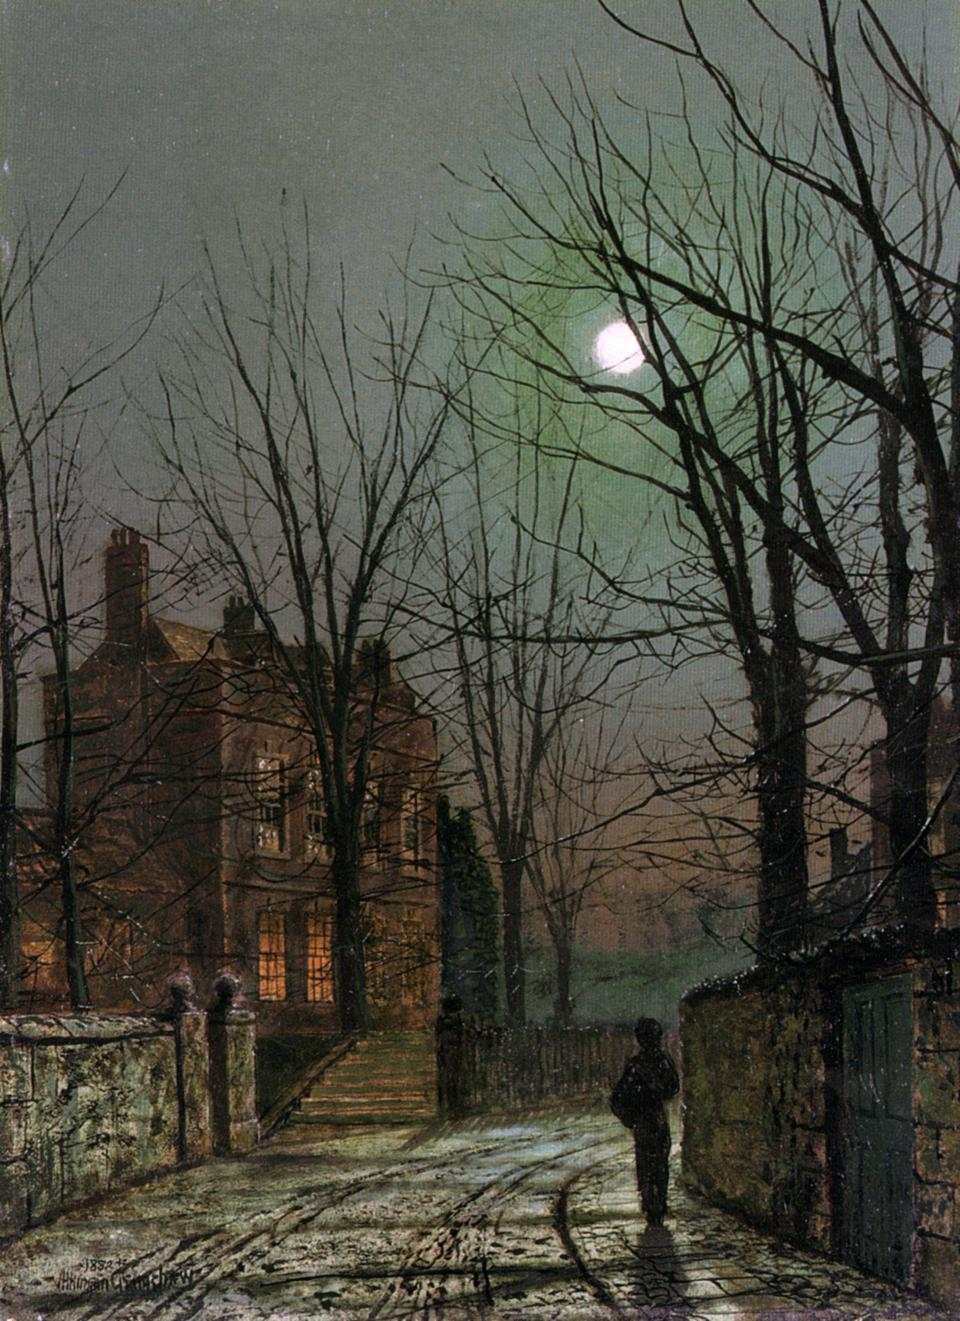 Eerie picture depicts scary city scene - 'By the Light of the Moon', 1882. Artist: John Atkinson Grimshaw